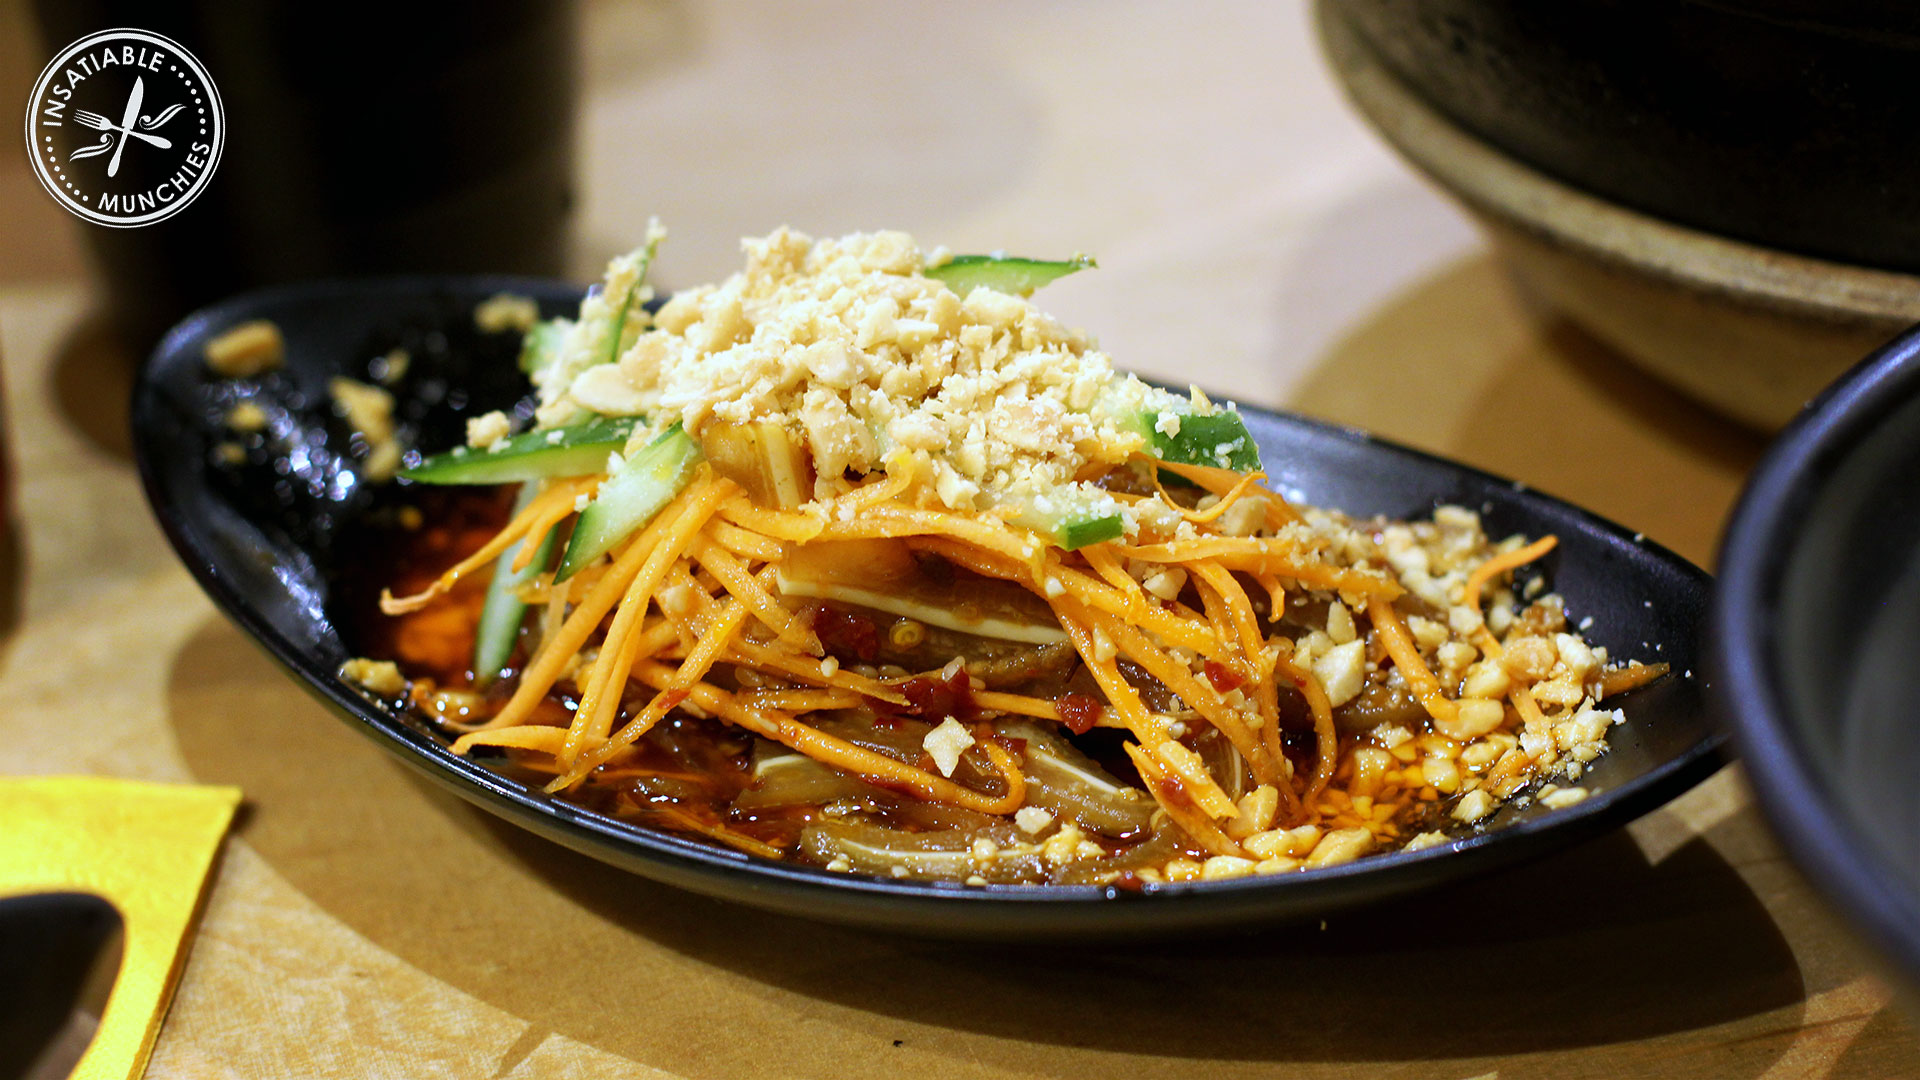 Pig's ears, cooked and finely sliced. Mixed with chilli oil, peanuts, finely sliced carrots and cucumbers, and sze chuan peppers.